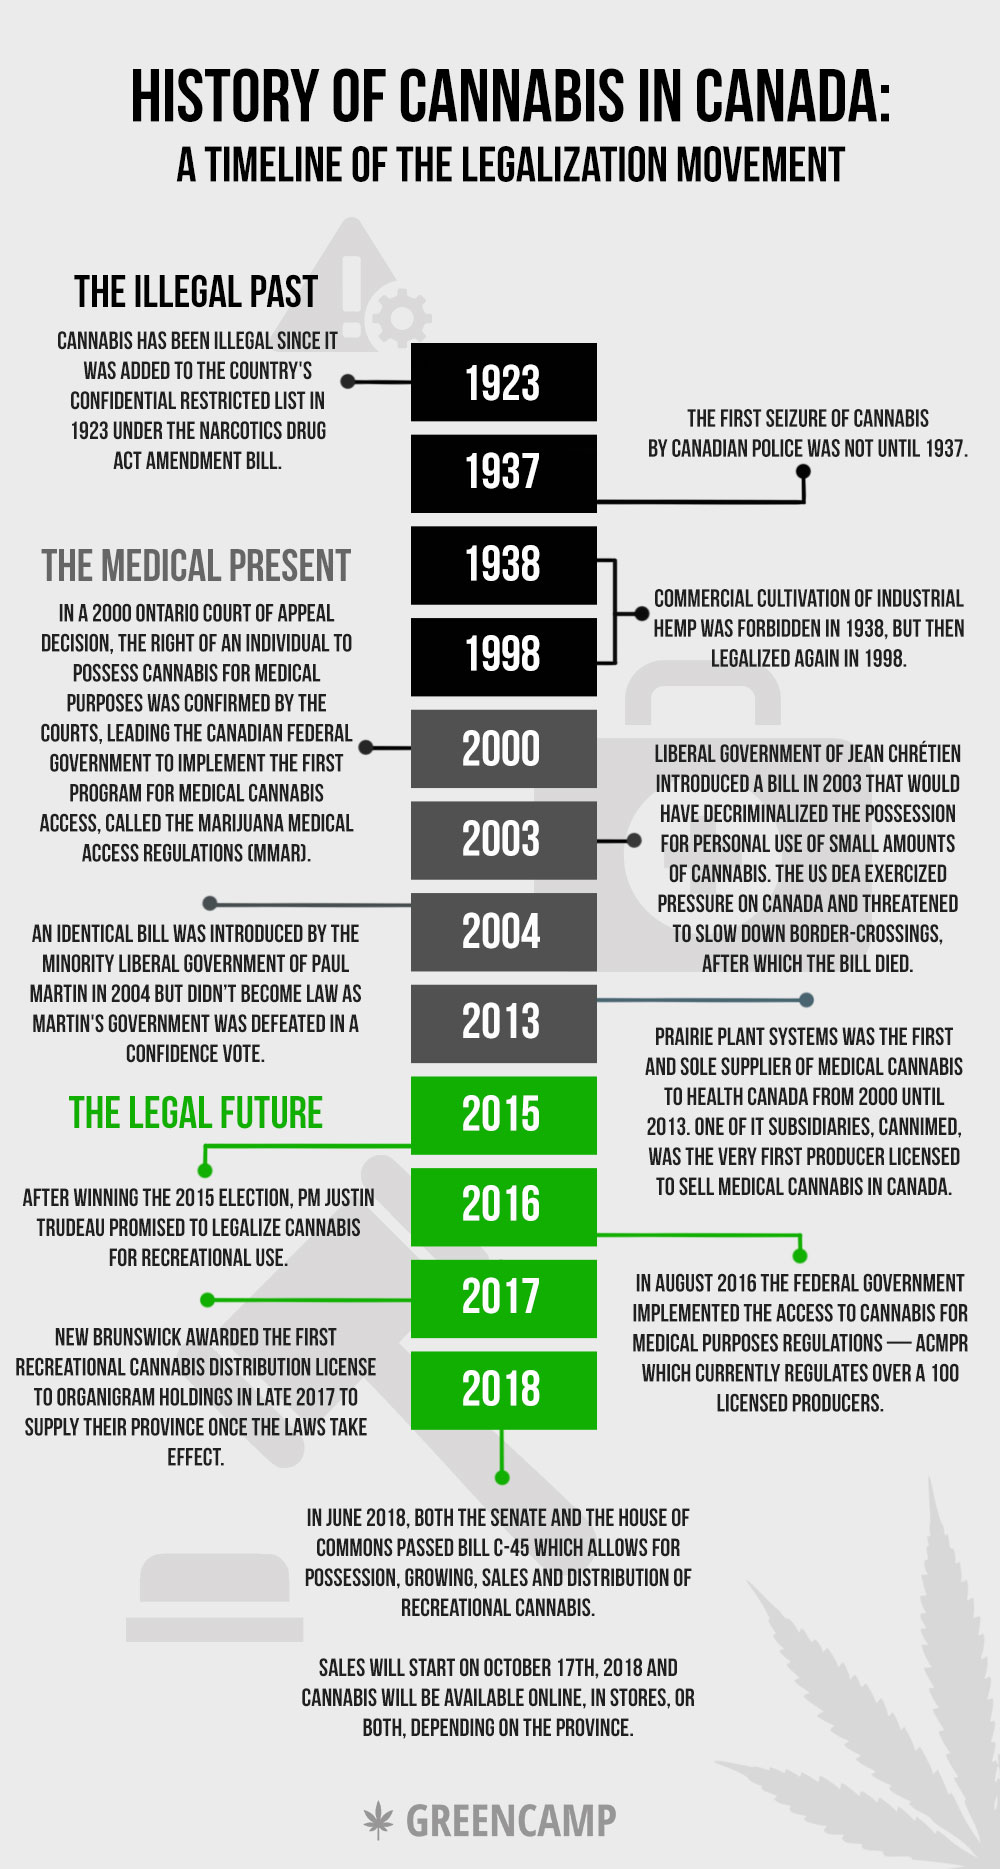 history of cannabis in canada infographic